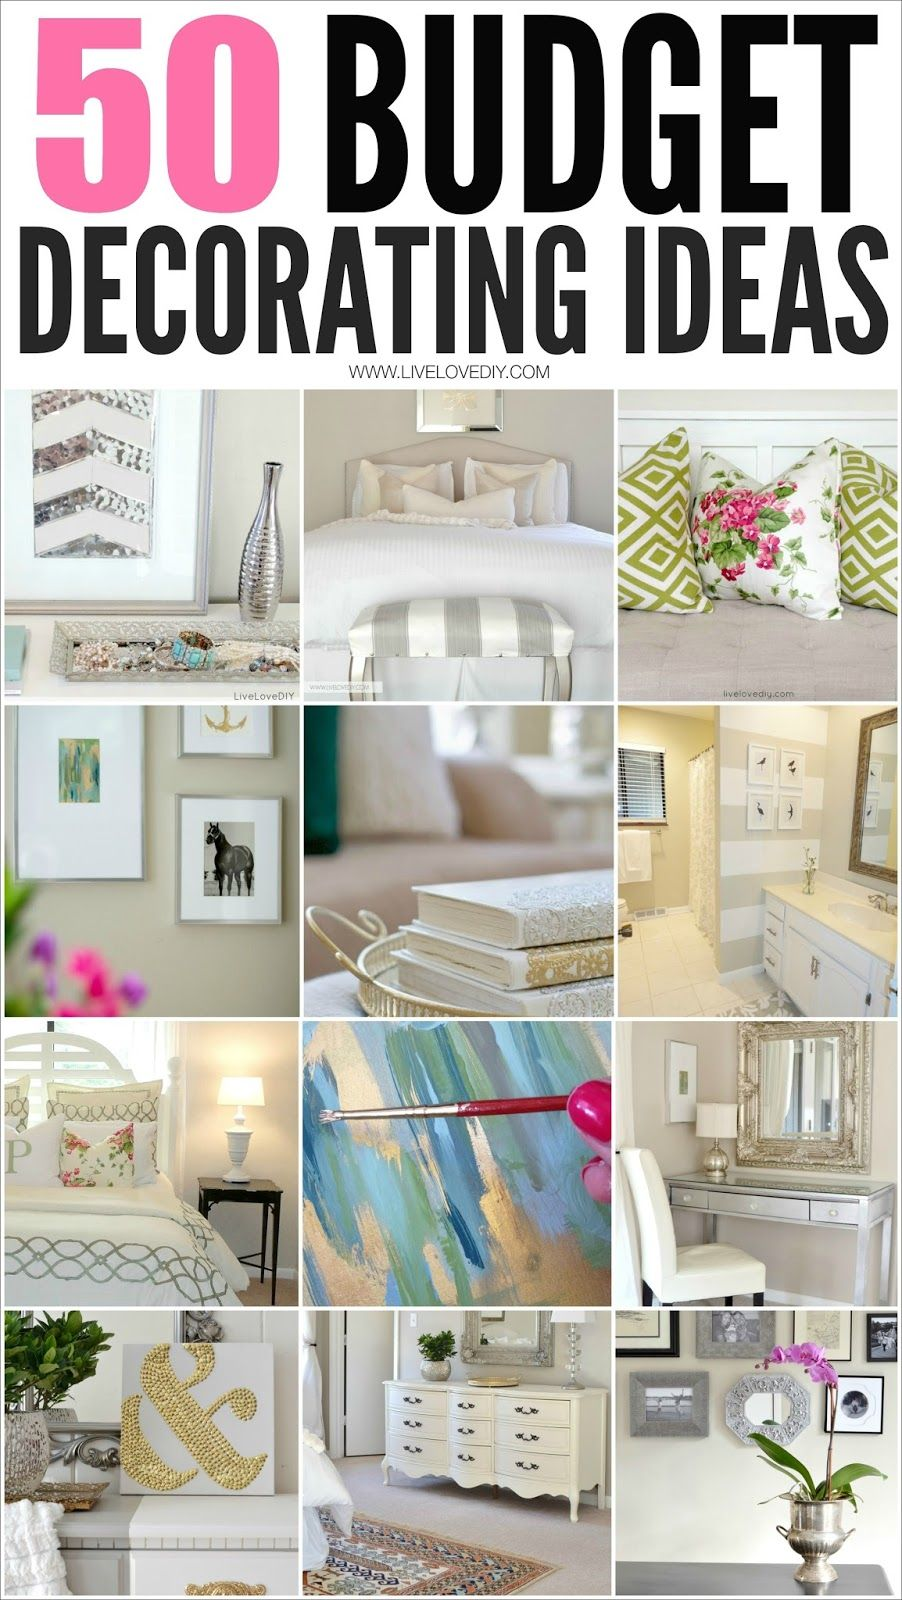 50 Budget Decorating Tips You Should Know! (LiveLoveDIY) | Pinterest ...